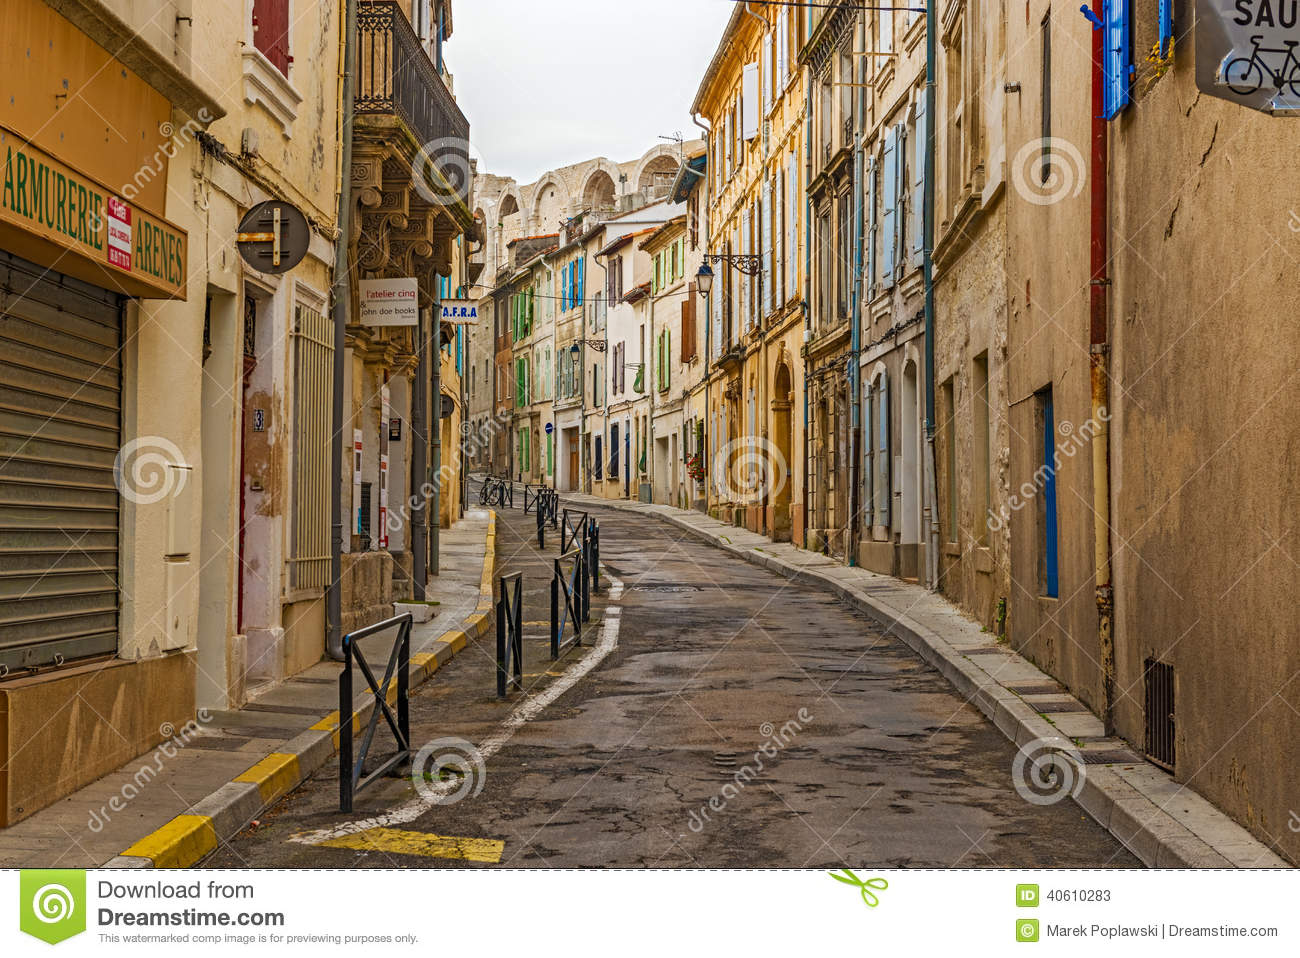 Early Morning View At The Street In Old City Of Arles